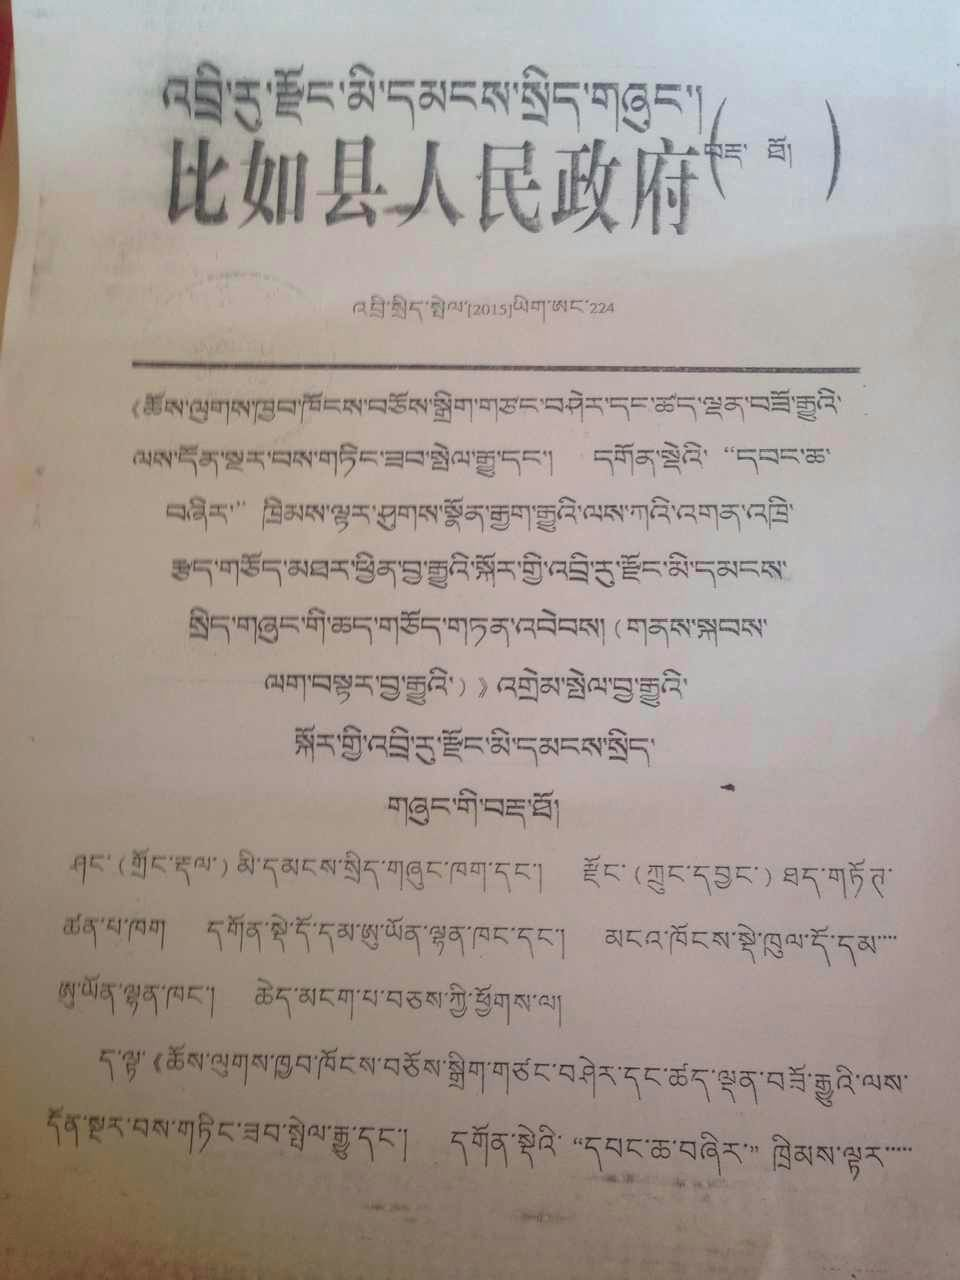 The front page of the Notice issued by Diru County government on 19 September 2015